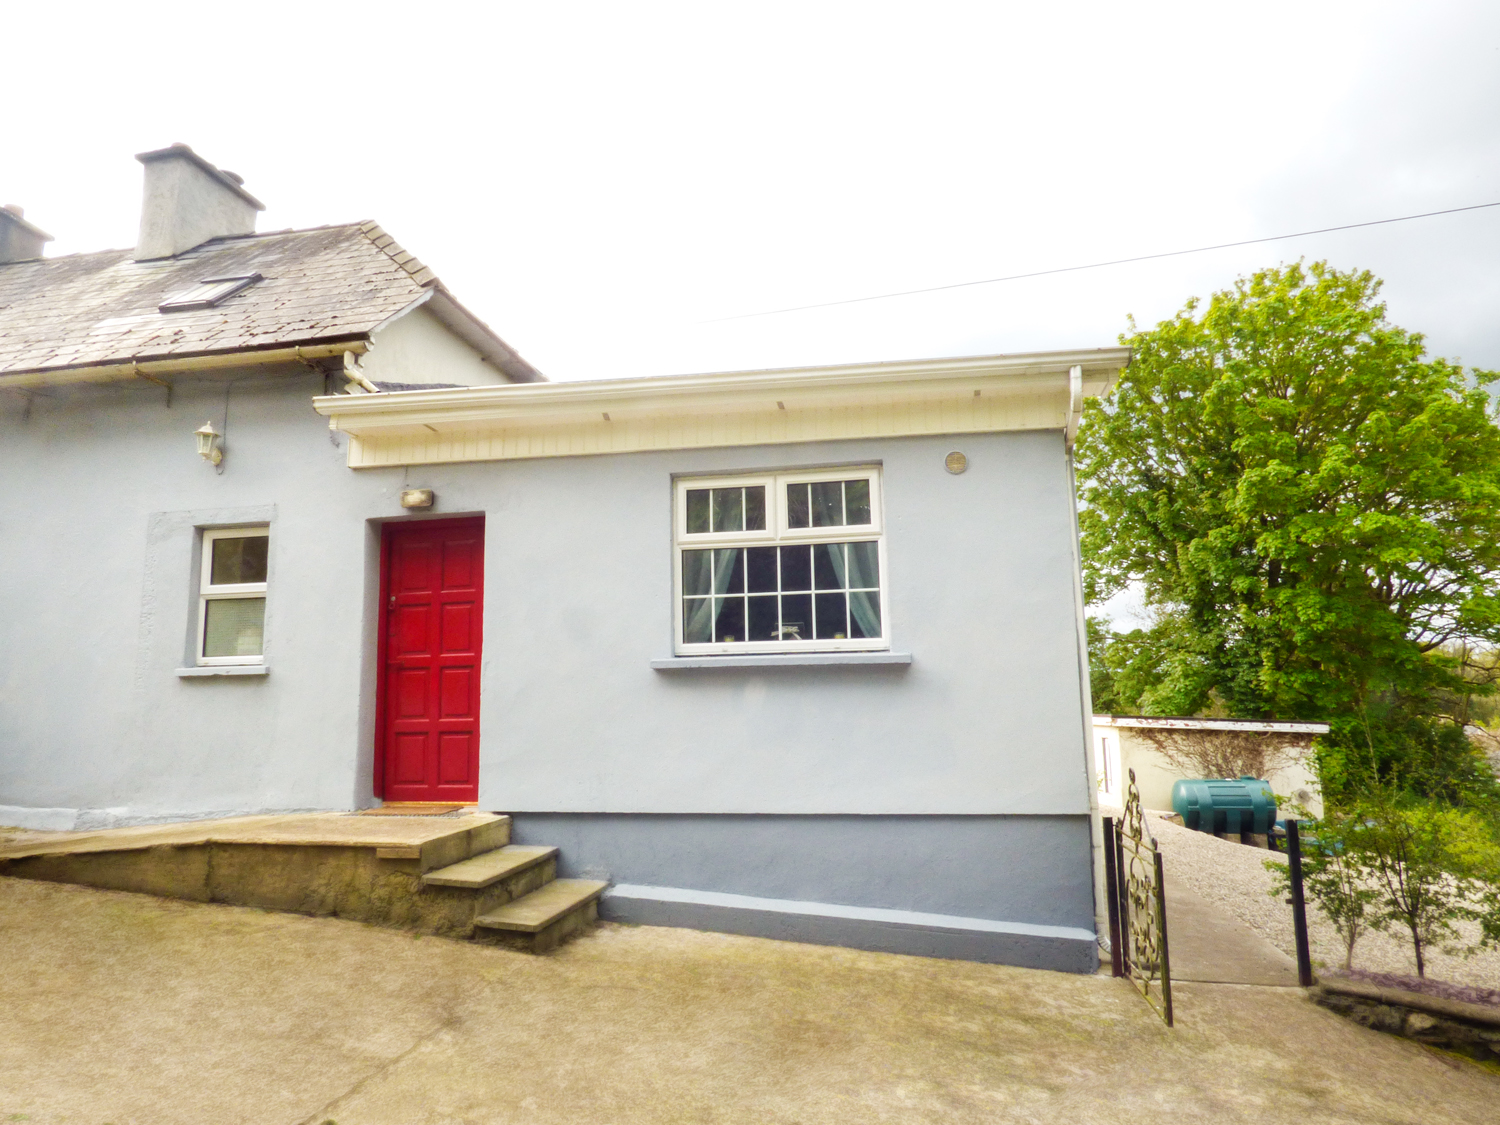 3 bedroom Cottage for rent in Enniscorthy